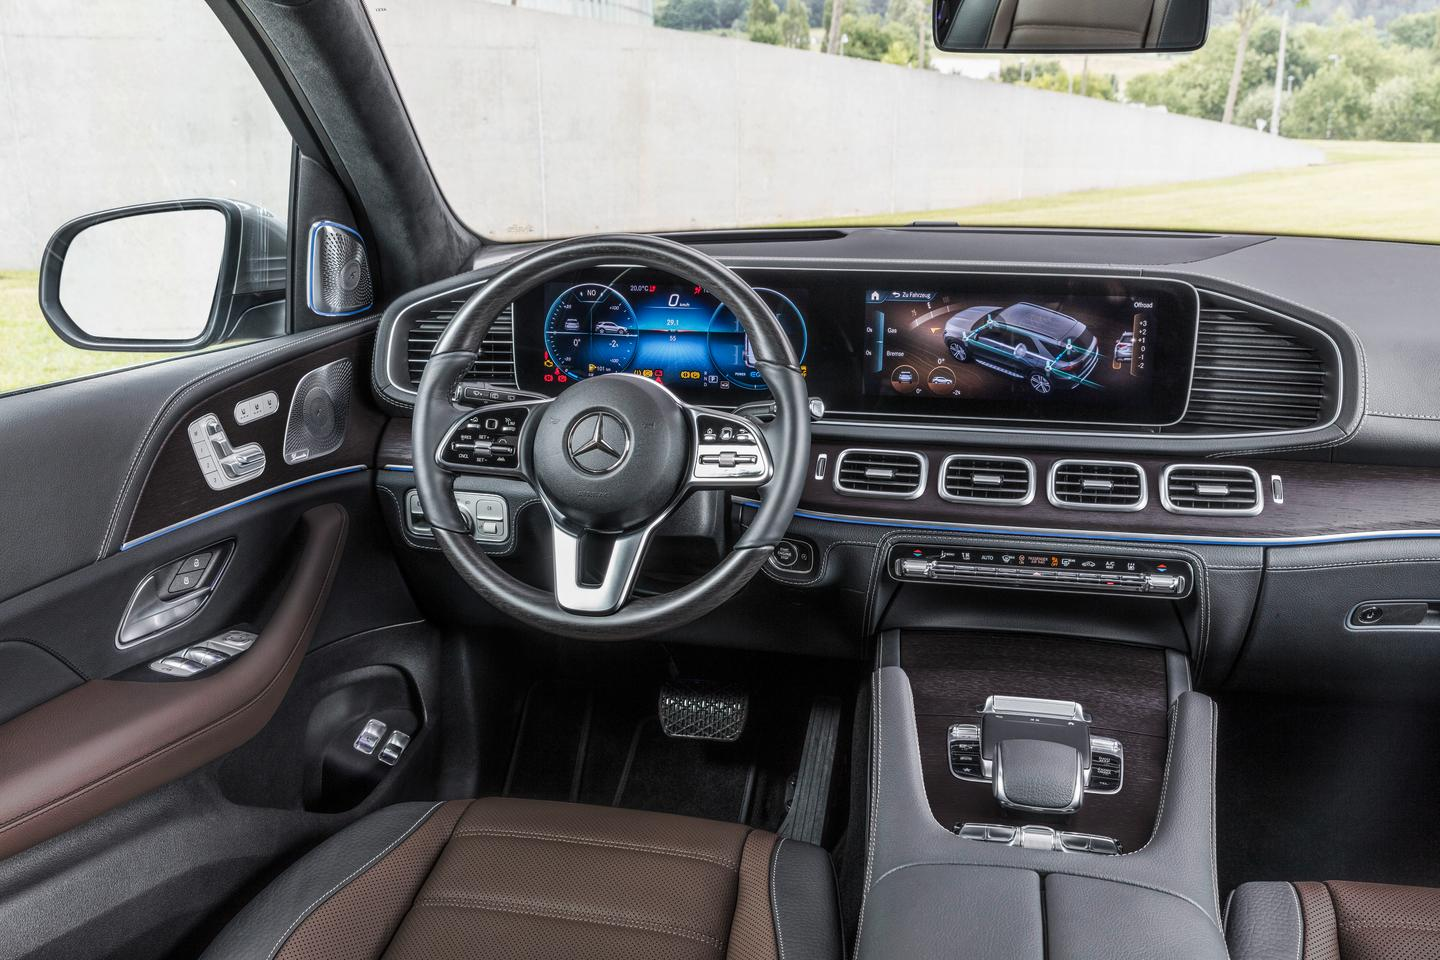 2019 Mercedes-Benz GLE: interior with dash and MBUX system